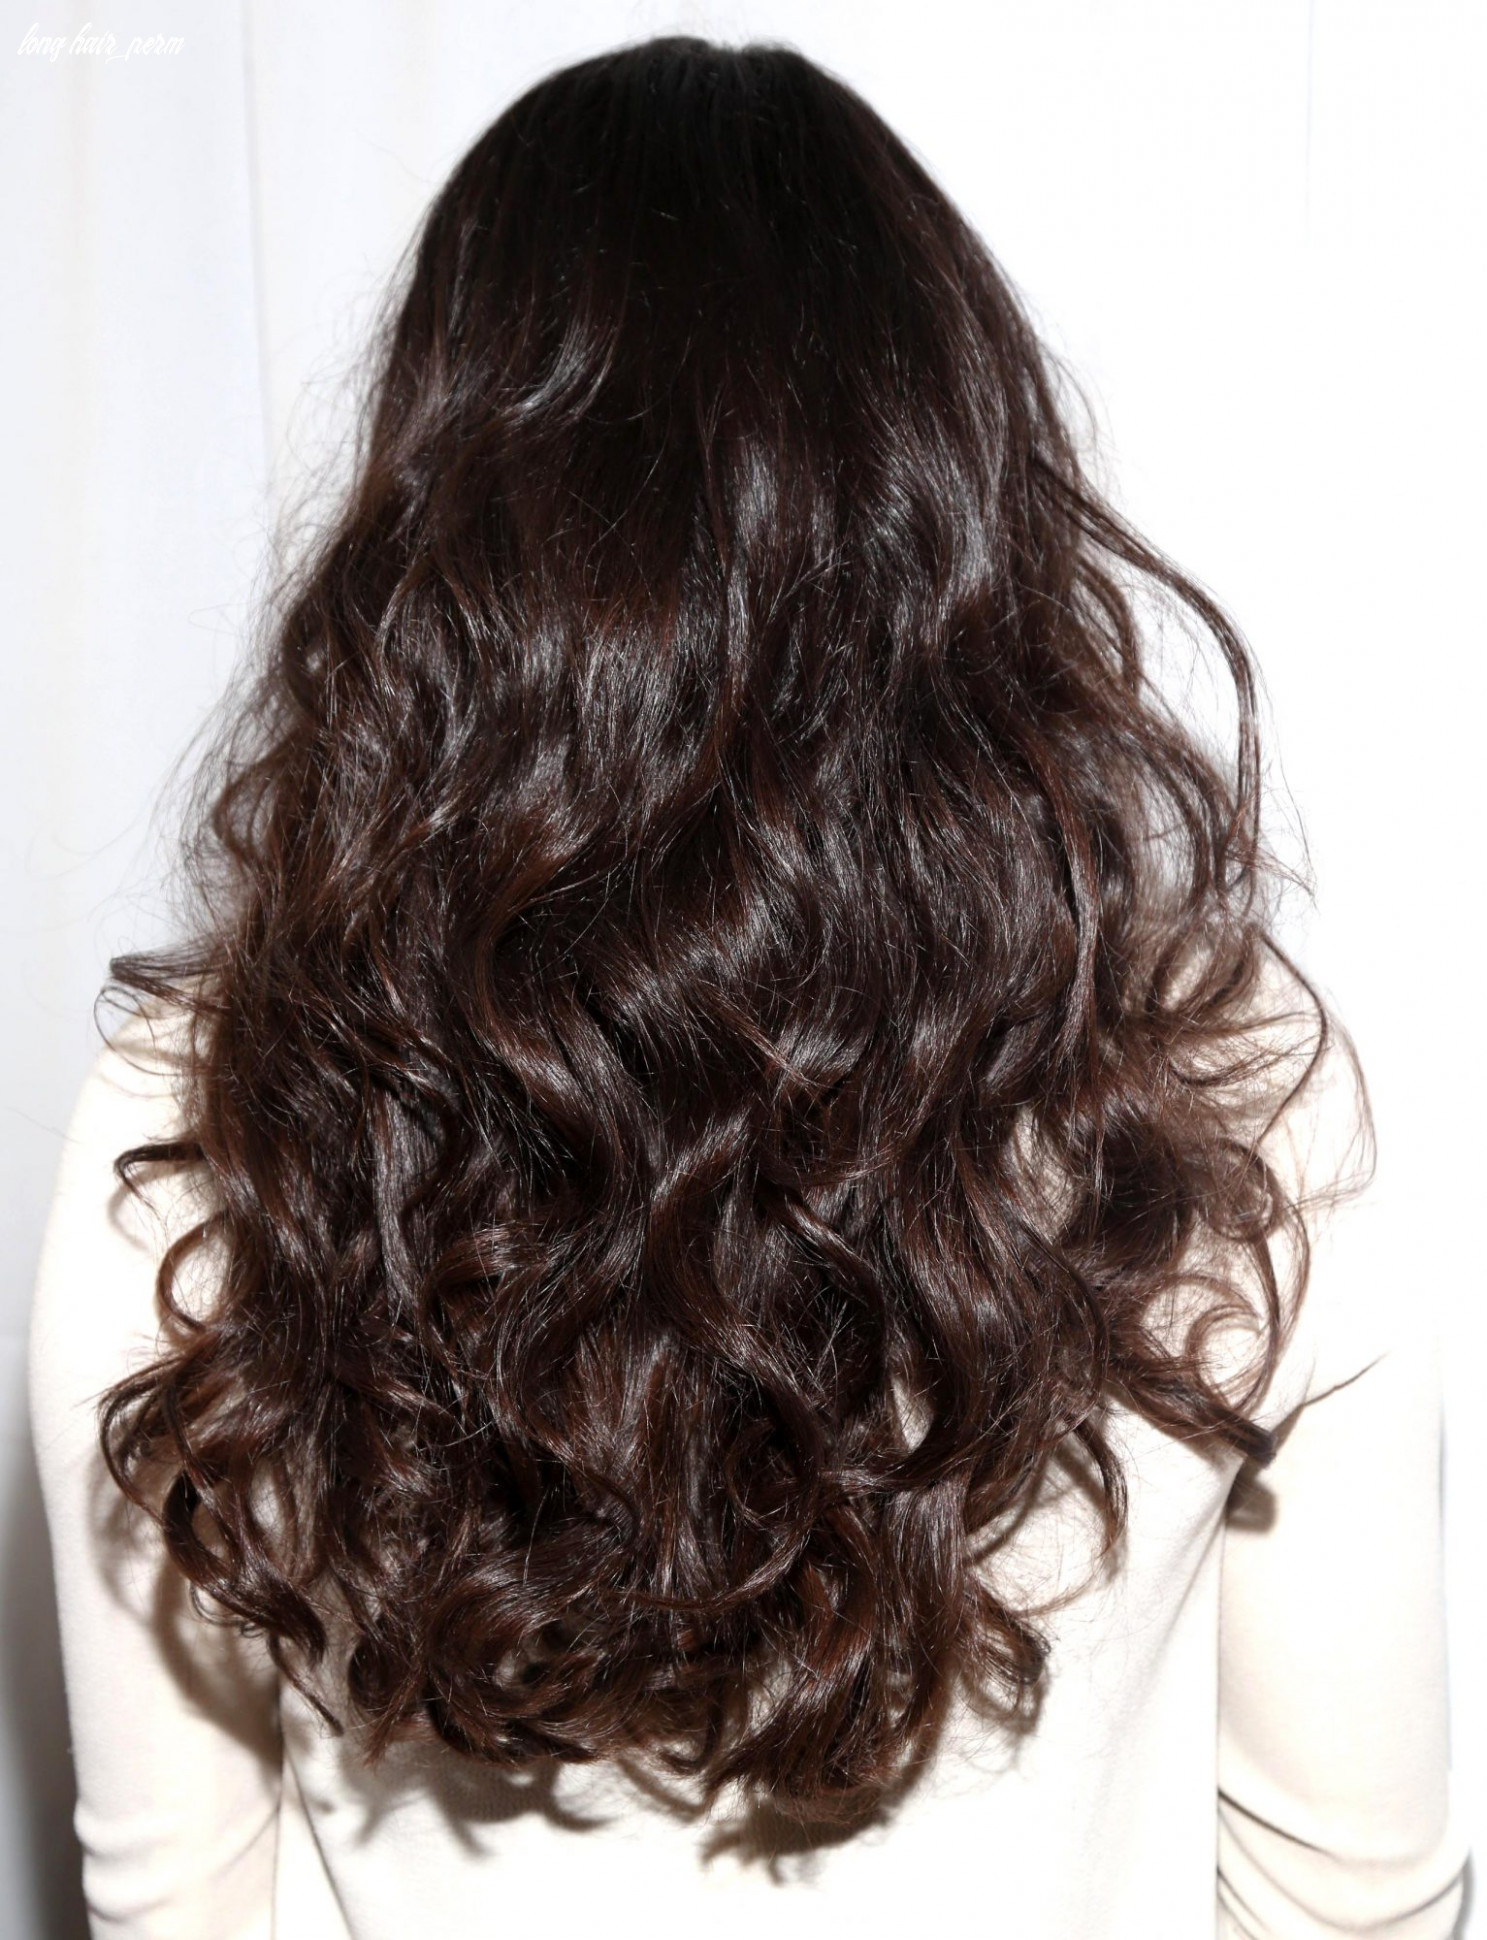 Permed hair and how you should care for it | instyle long hair perm